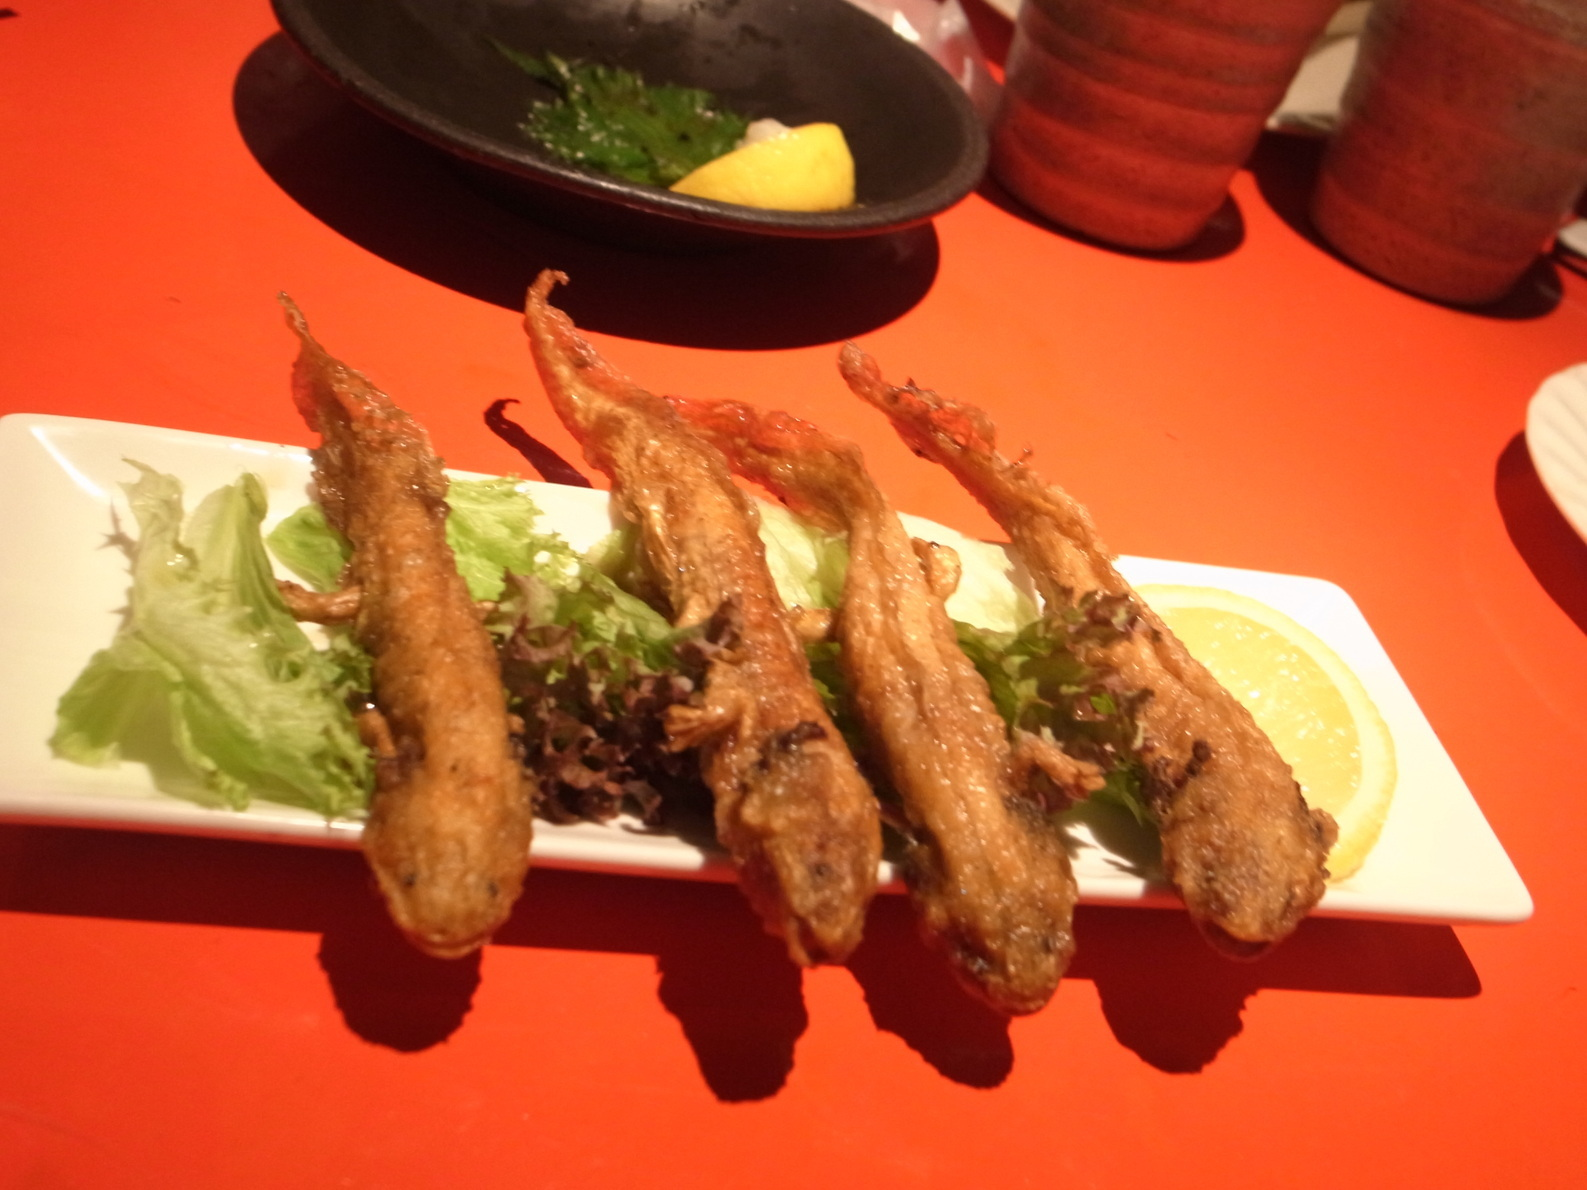 Deep Fried Salamanders | A Restaurant In Japan Sells the World's Most Bizarre Dishes.